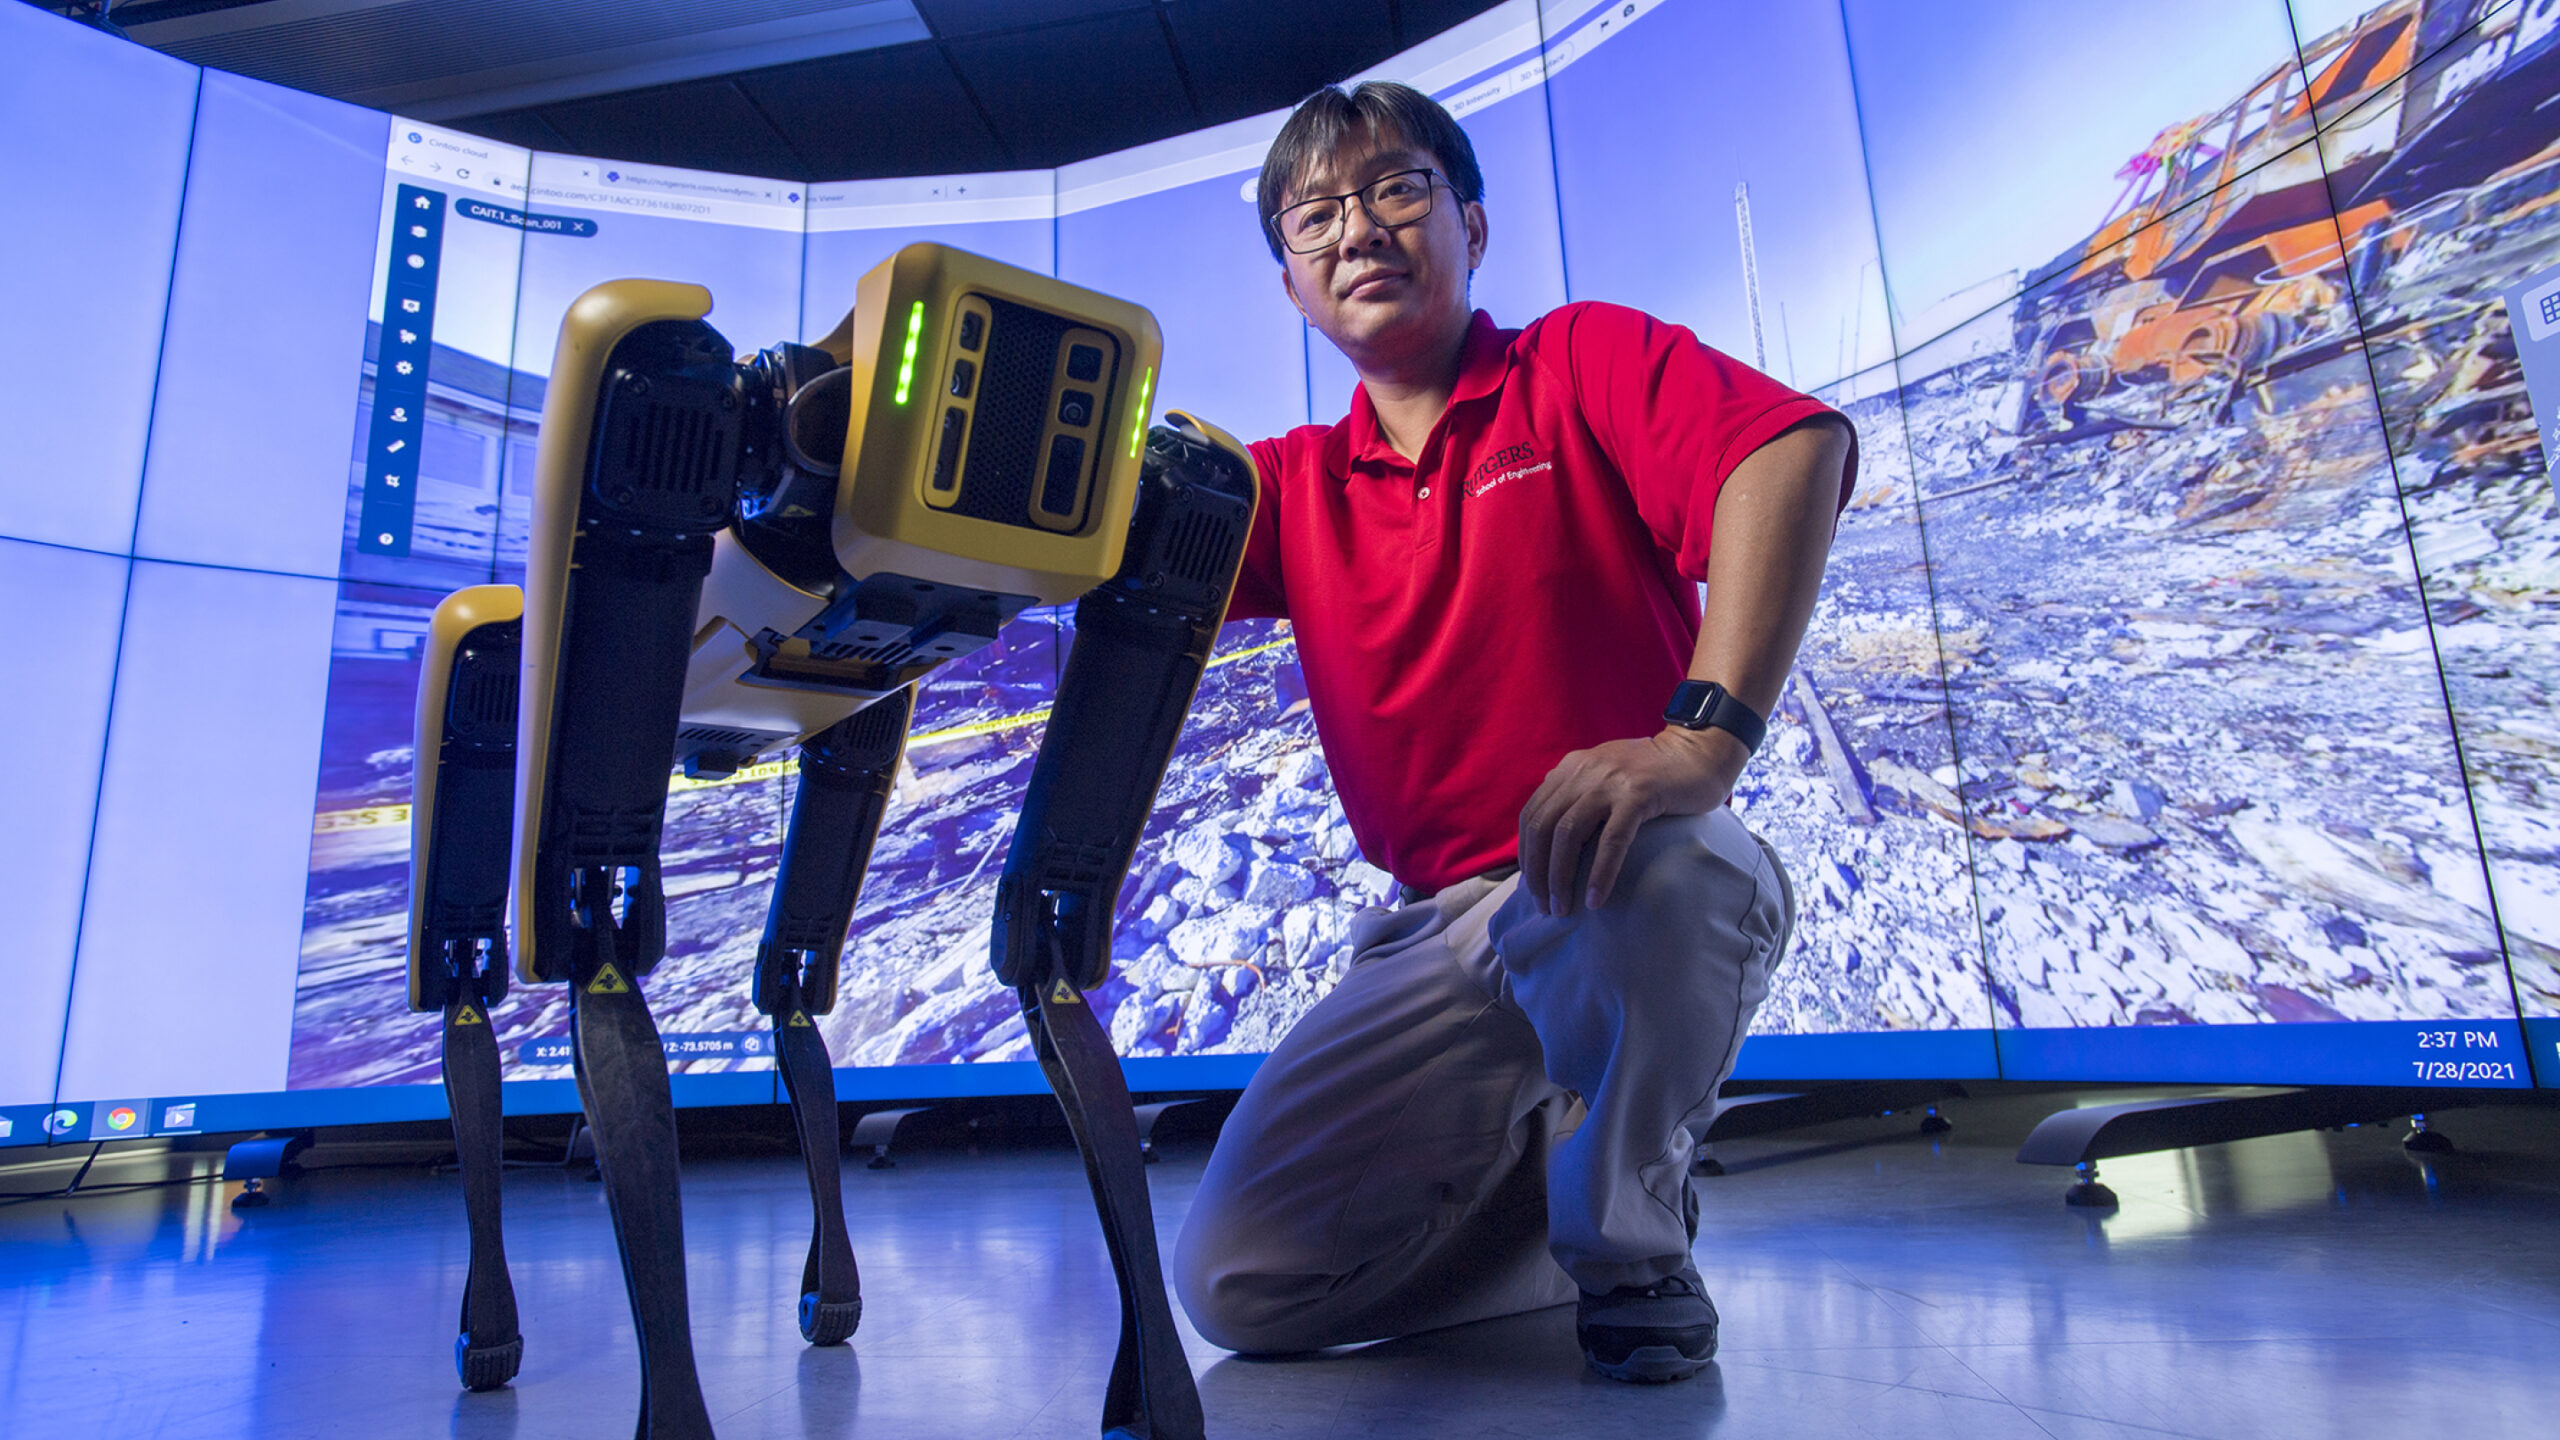 Jie Gong and a robotic dog